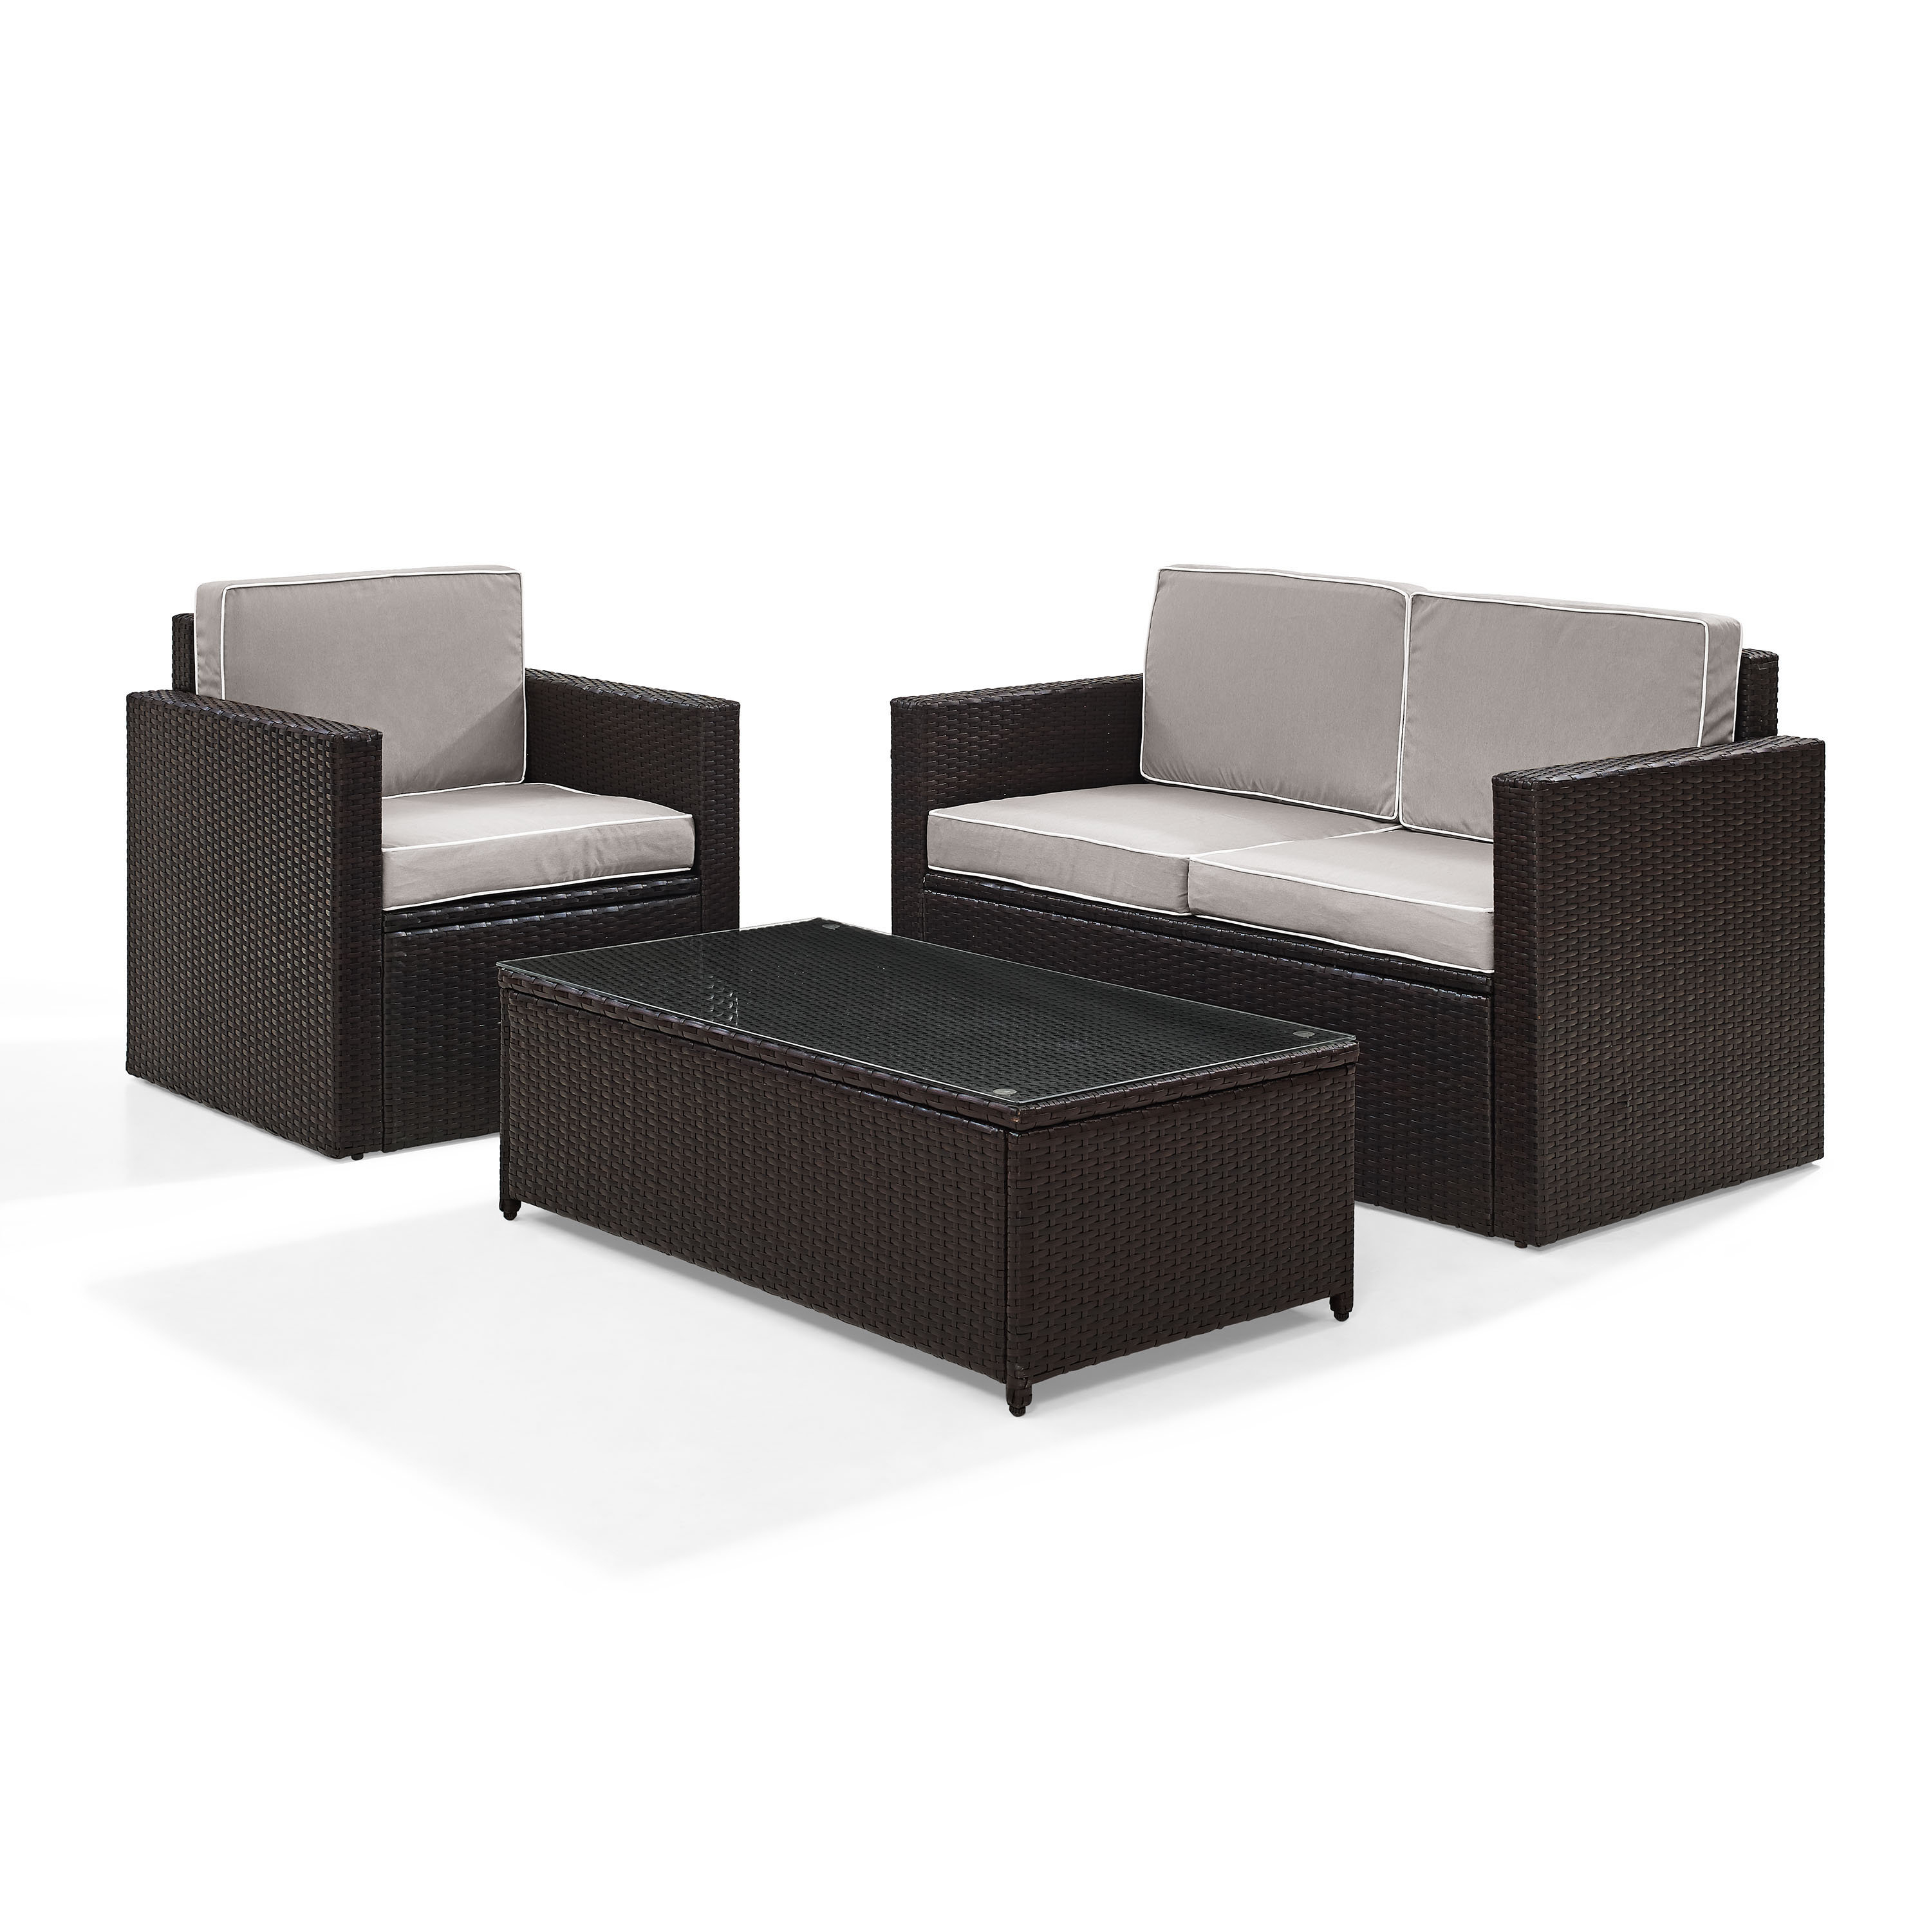 Belton Loveseats With Cushions In Well Known Belton 3 Piece Rattan Sofa Set With Cushions (View 5 of 25)